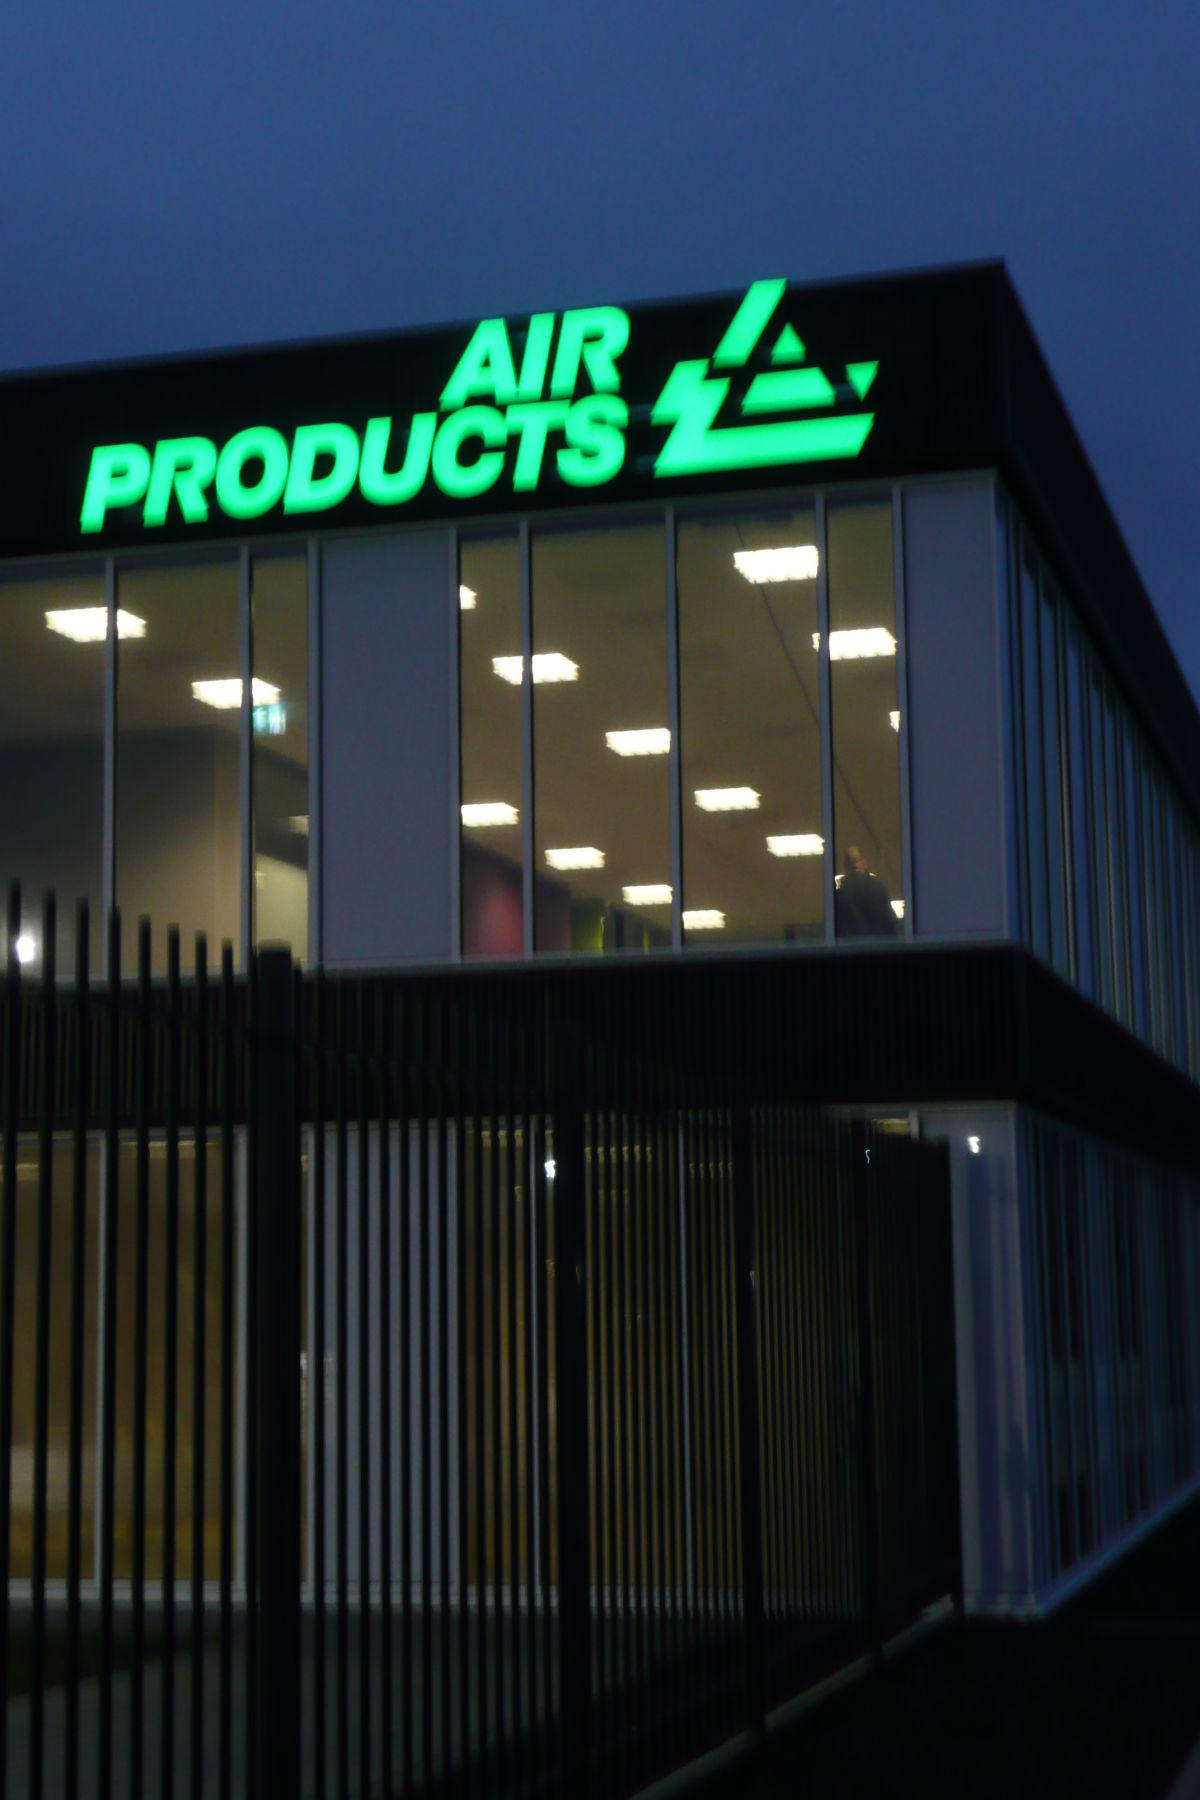 Gevelreclame Air Products